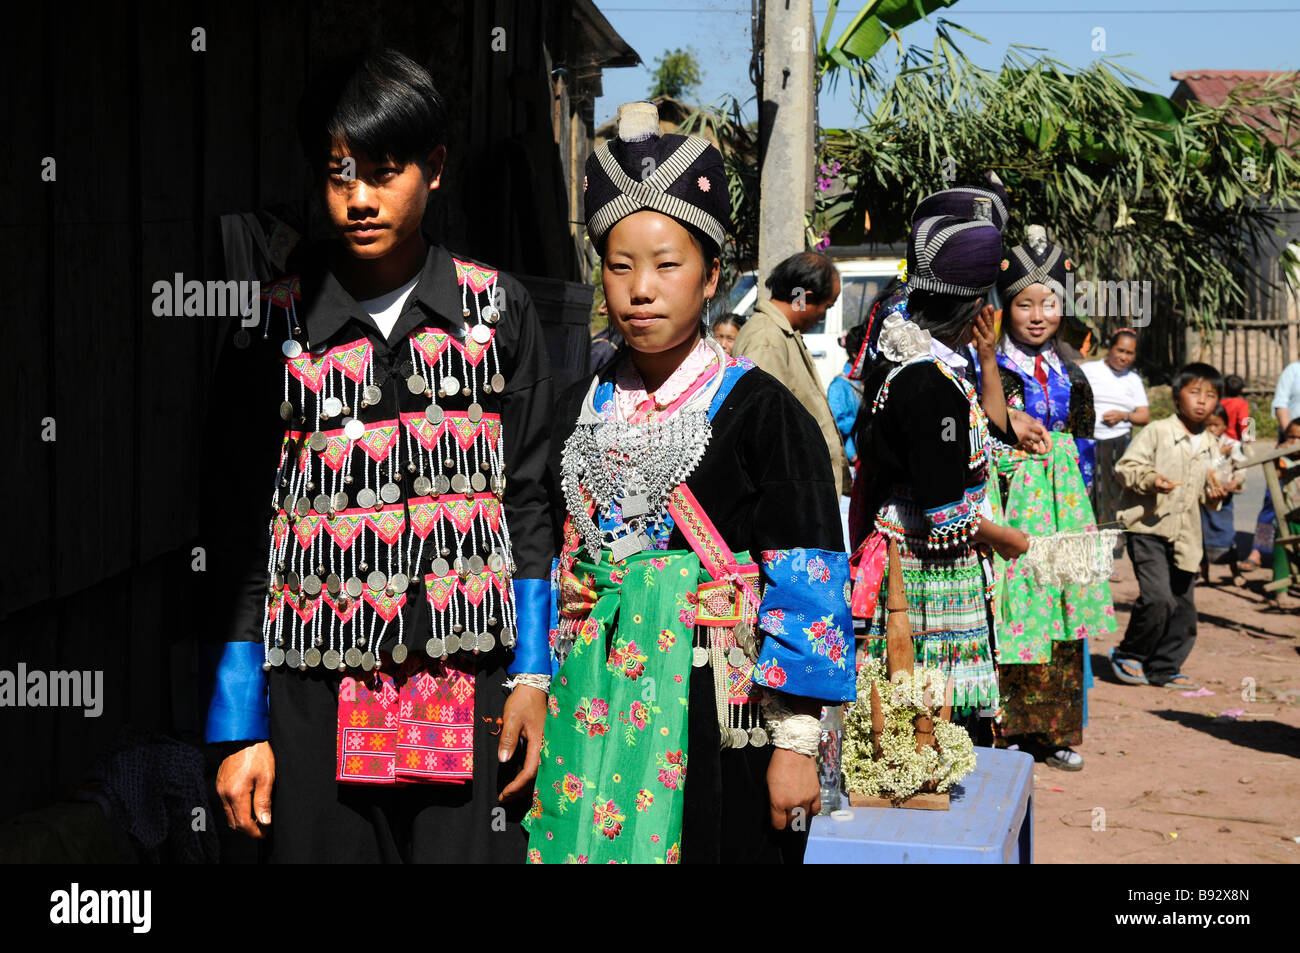 Wedding Laos Stock Photos & Wedding Laos Stock Images - Alamy